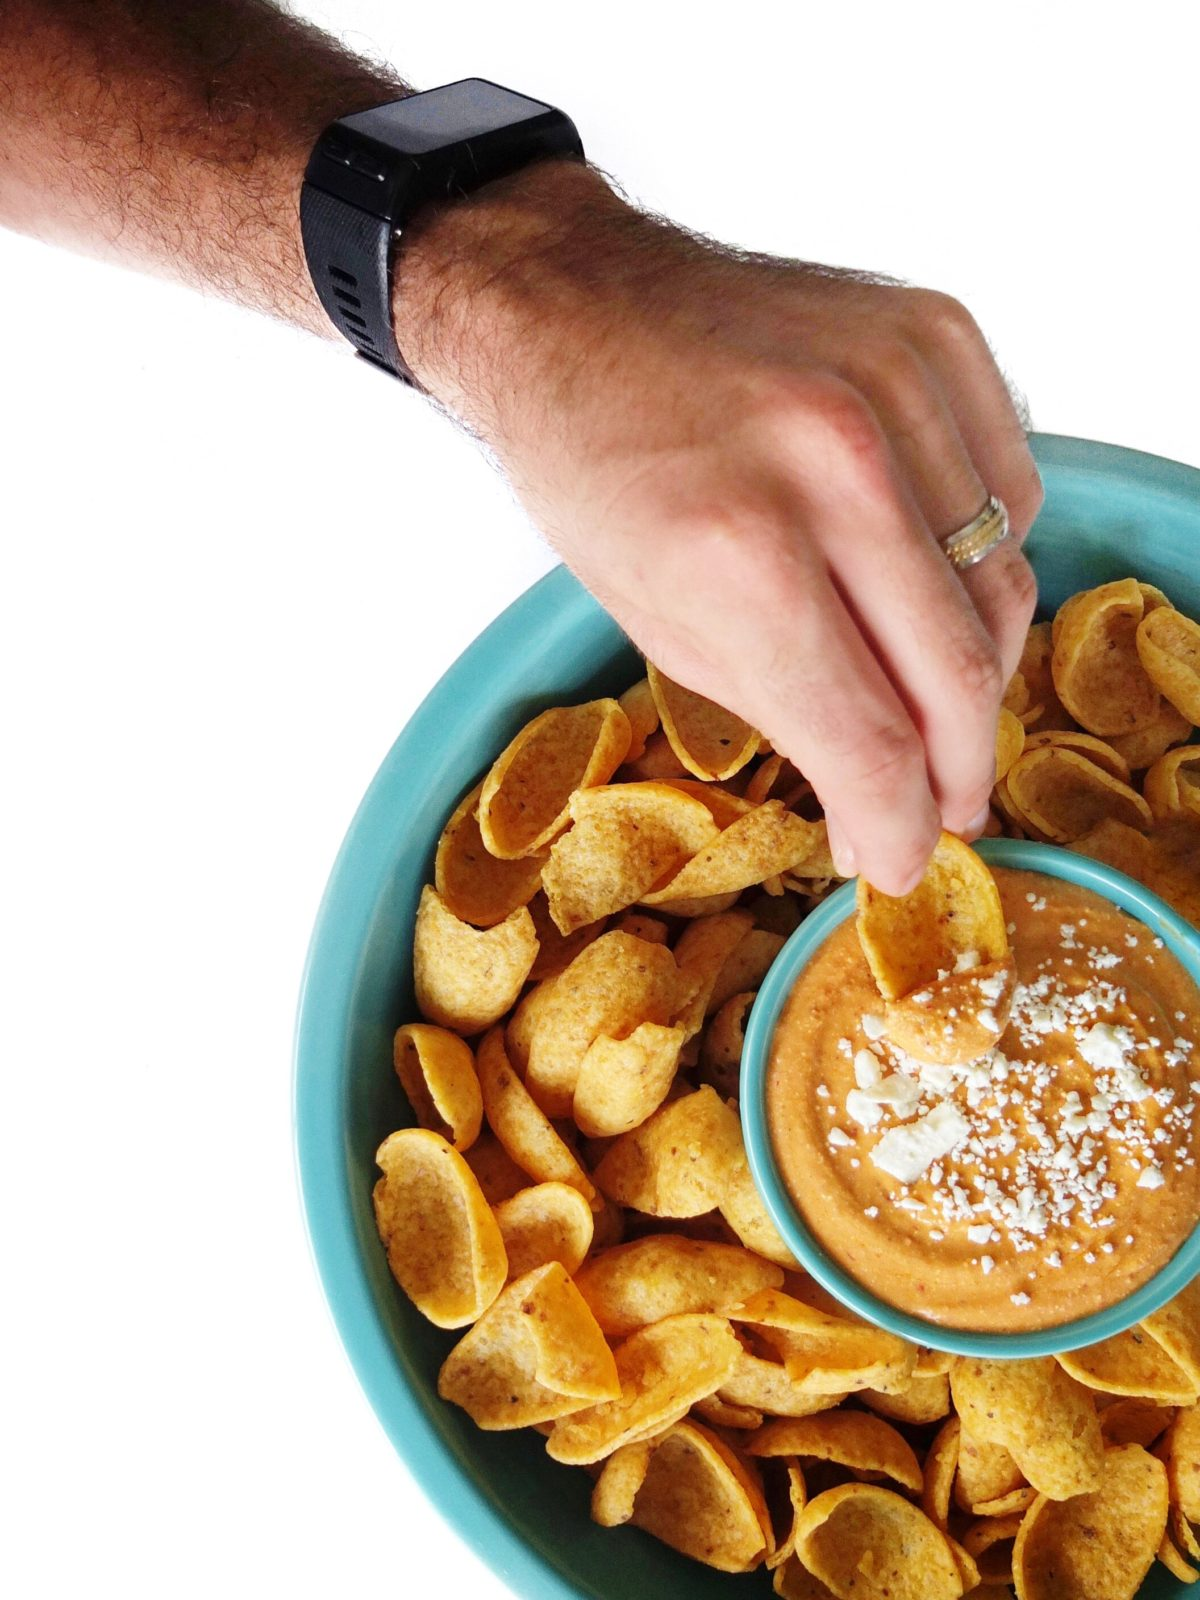 An easy football recipes for spicy bean dip with adobe chilis, great northern beans, taco seasoning, and more. Perfect for those husbands who love bean dip. // www.ElleTalk.com